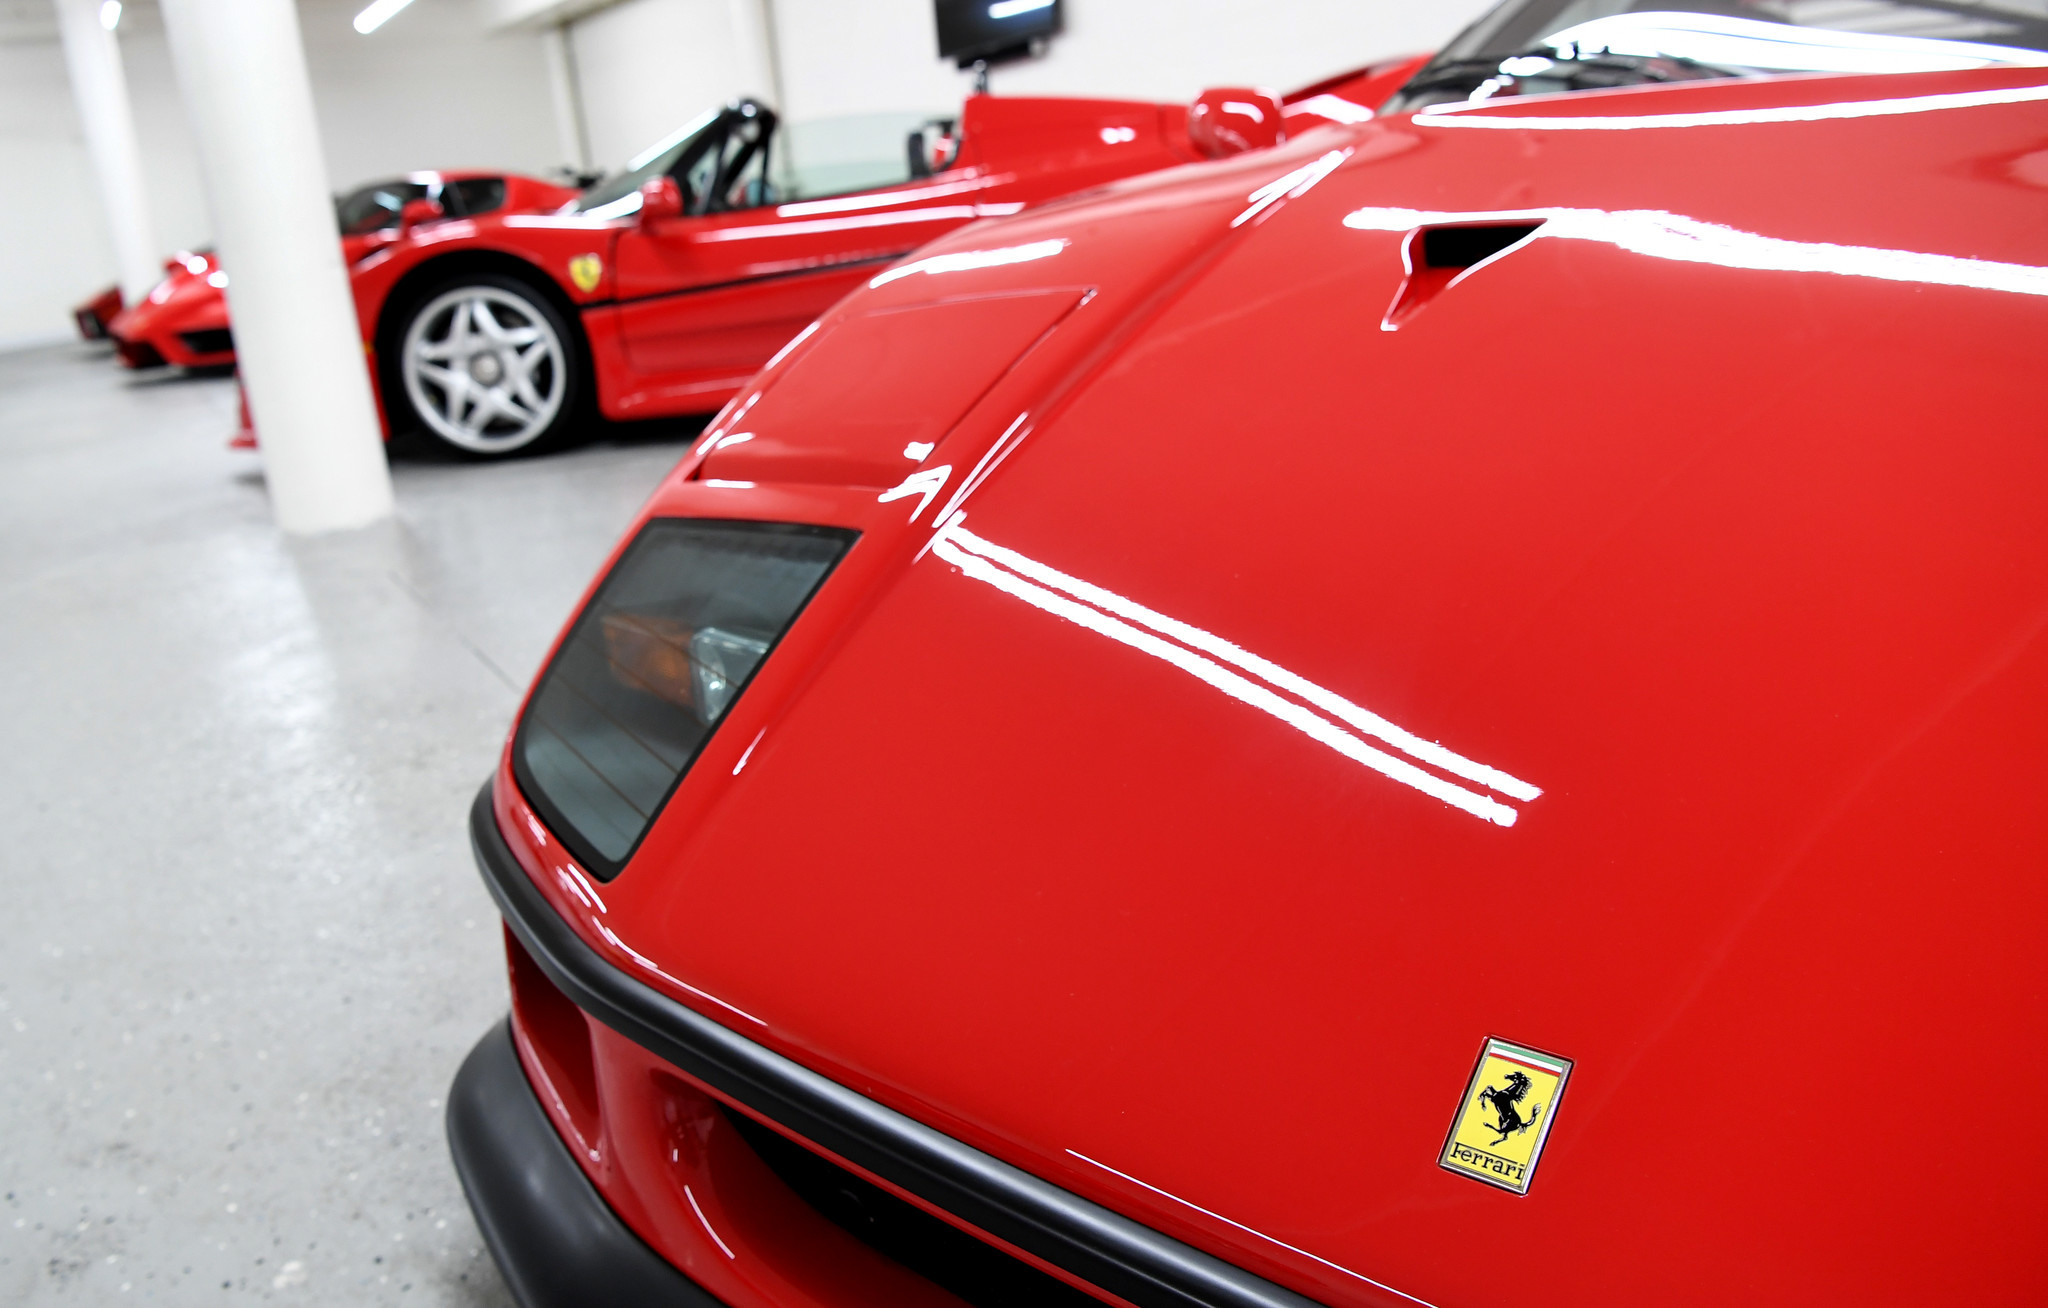 Among Lee's Ferraris are five matching red models.